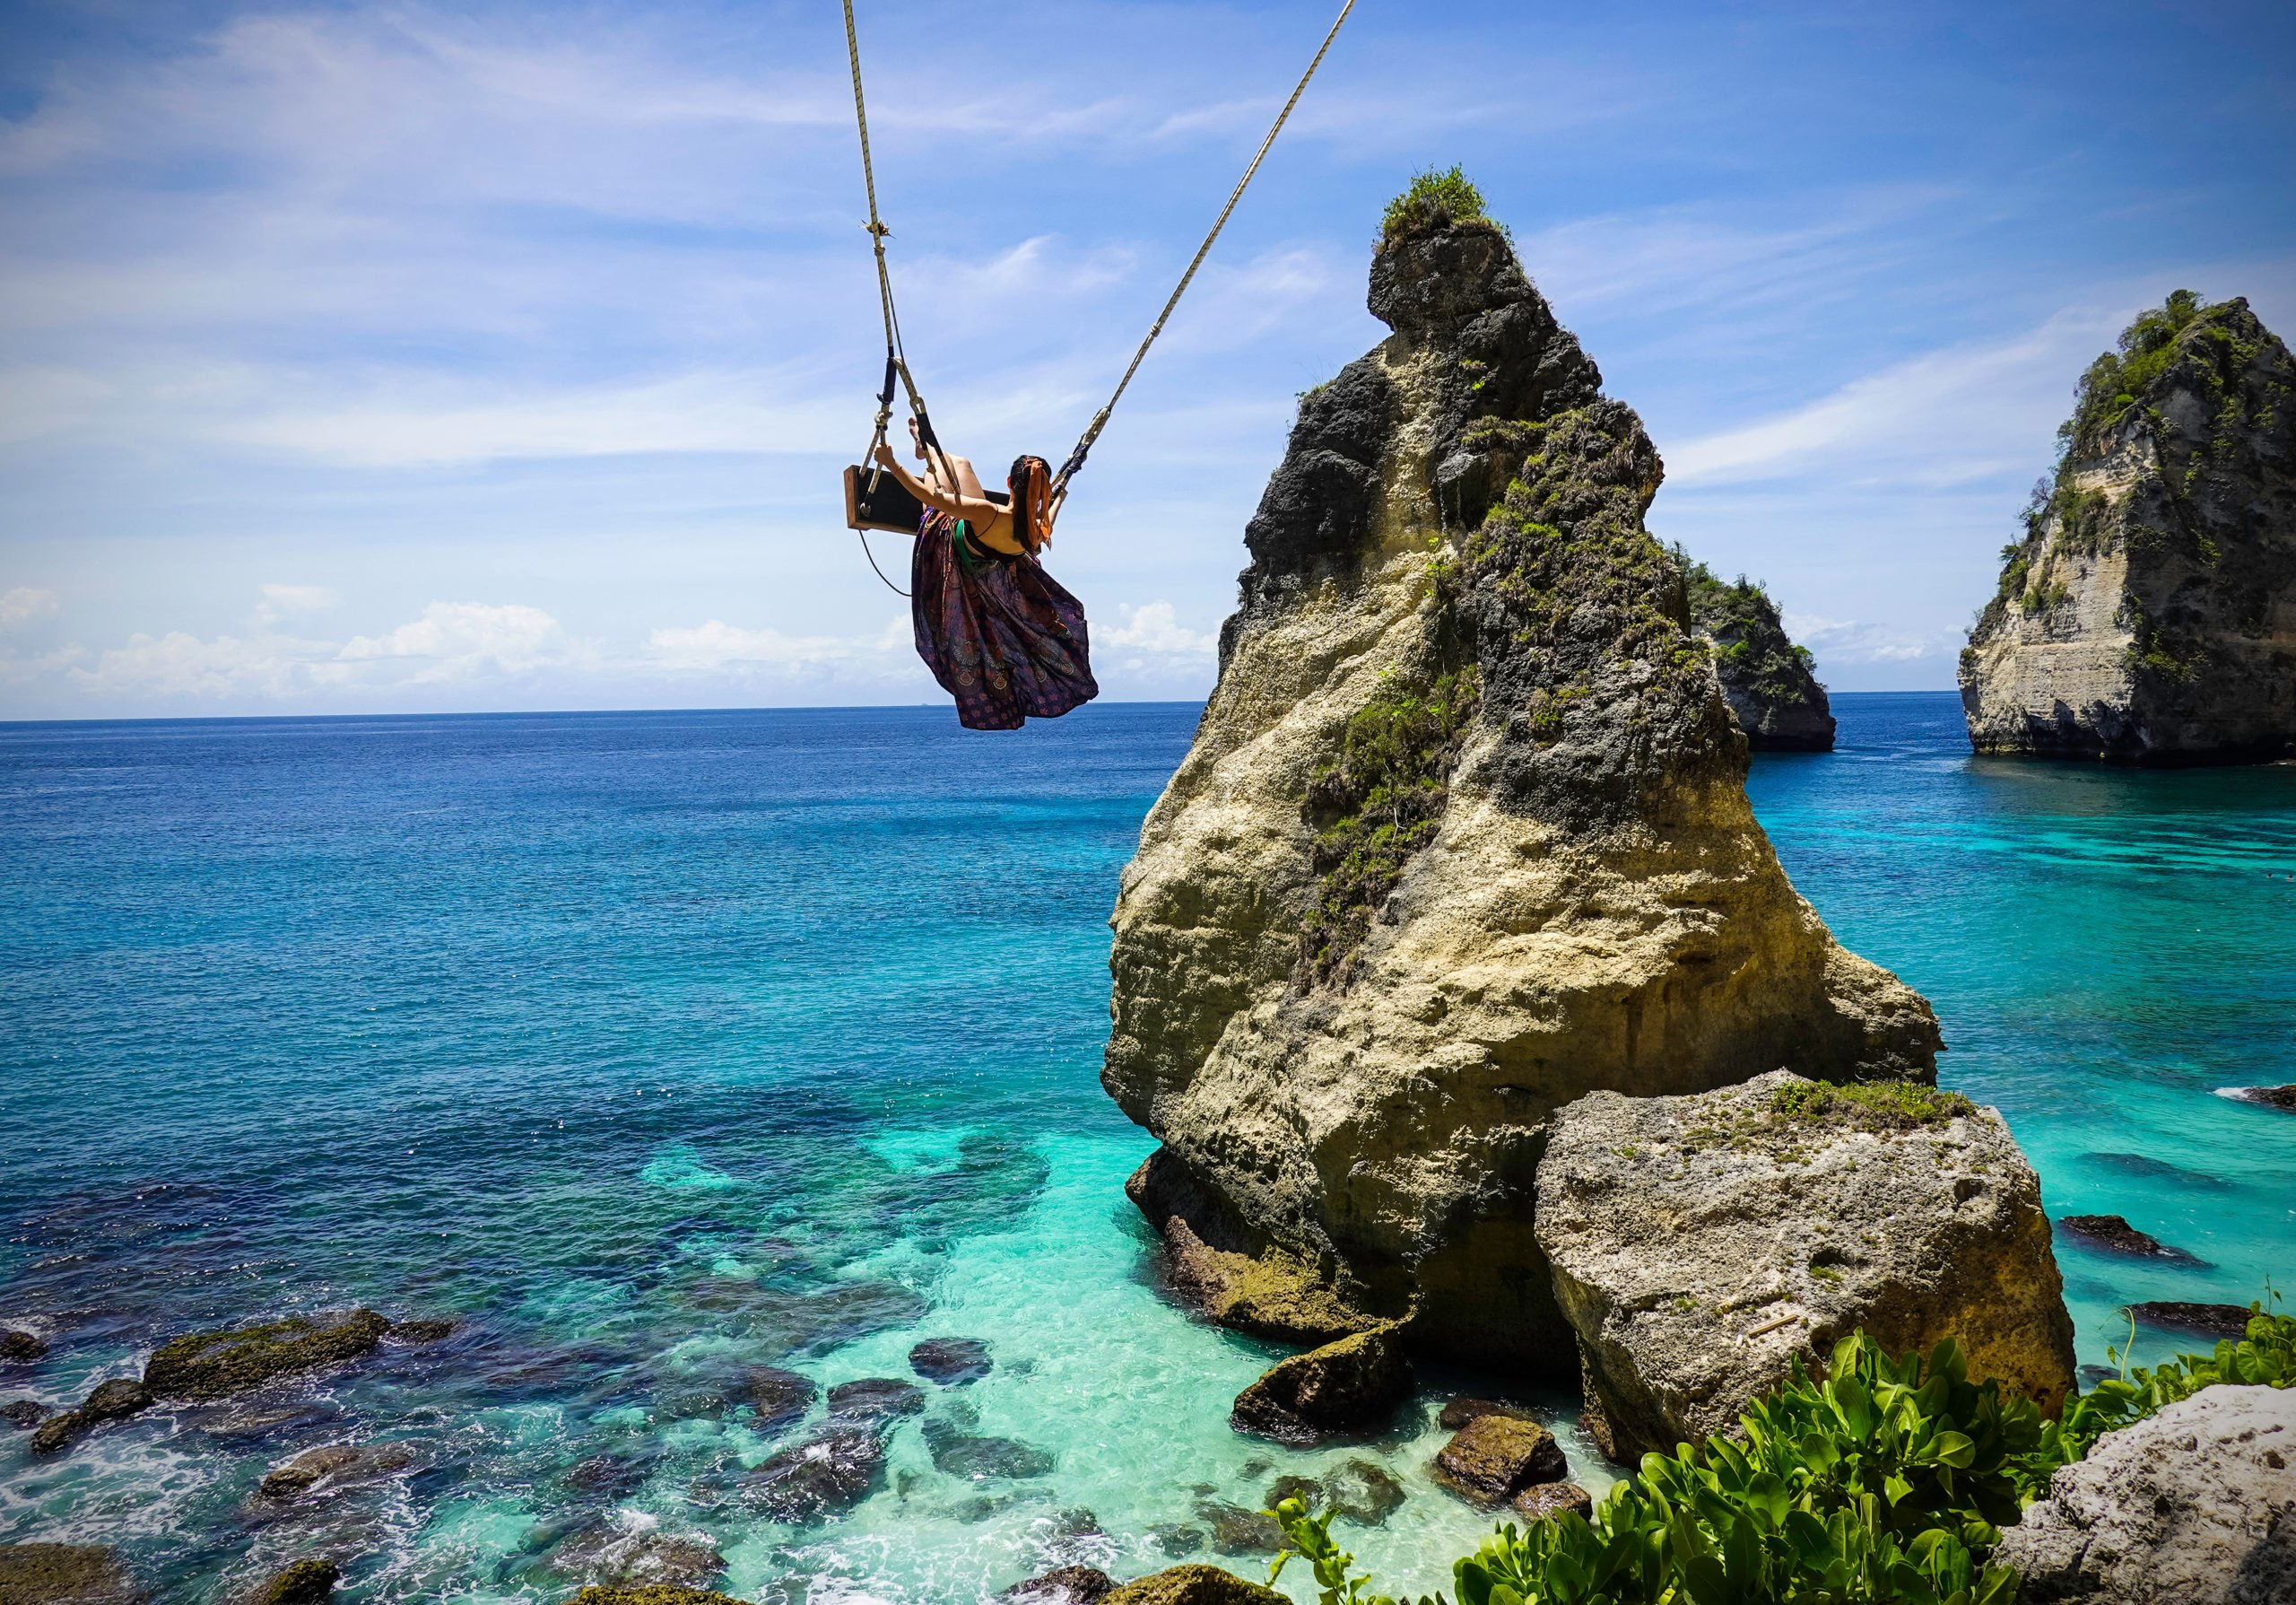 Don't Miss The Swing In Paradise On The Penida Island Tour From Ubud, Sanur, Nusa Dua, Tanjung Benoa, Seminyak